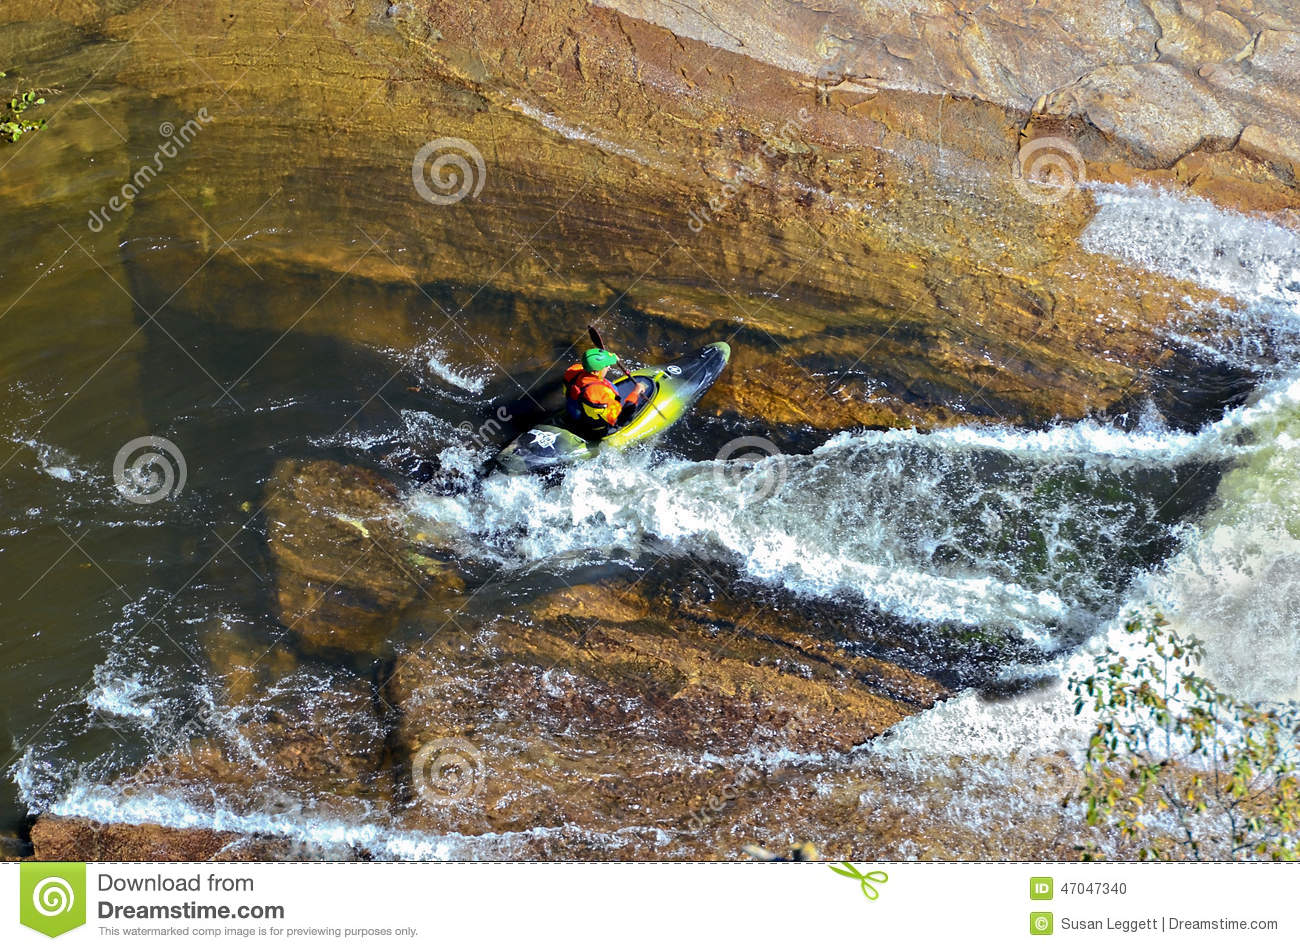 tallulah falls single men 5 injured among calls of drowning, heat exposure in tallulah gorge  black said  one of the medics there slipped and injured his hip and knee,.